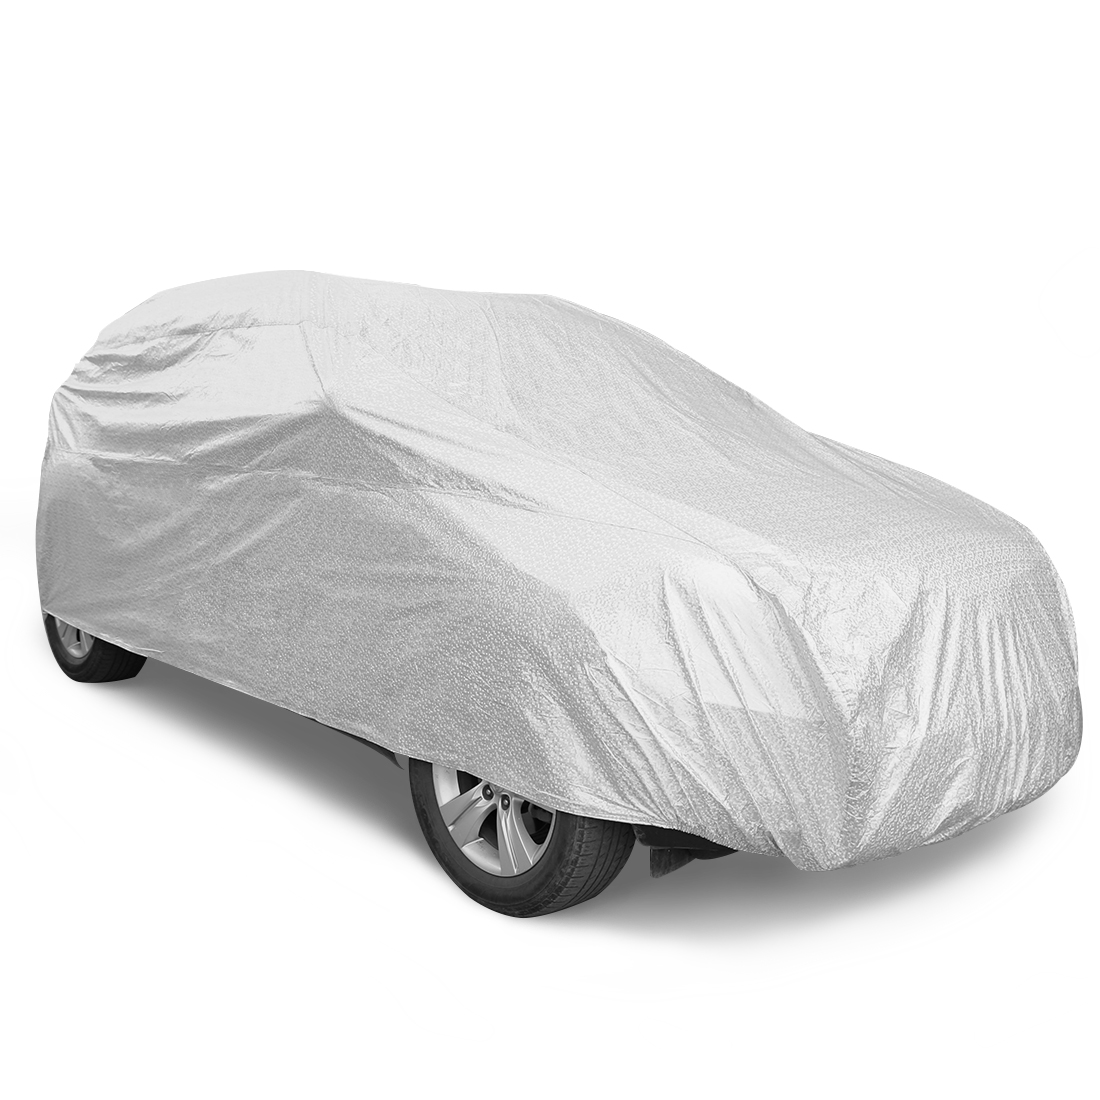 YL 10 Layers Car Cover Breathable Soft Aluminum Auto Sun Shade Ice Frost Resistant Waterproof Dustproof UV Heat Block